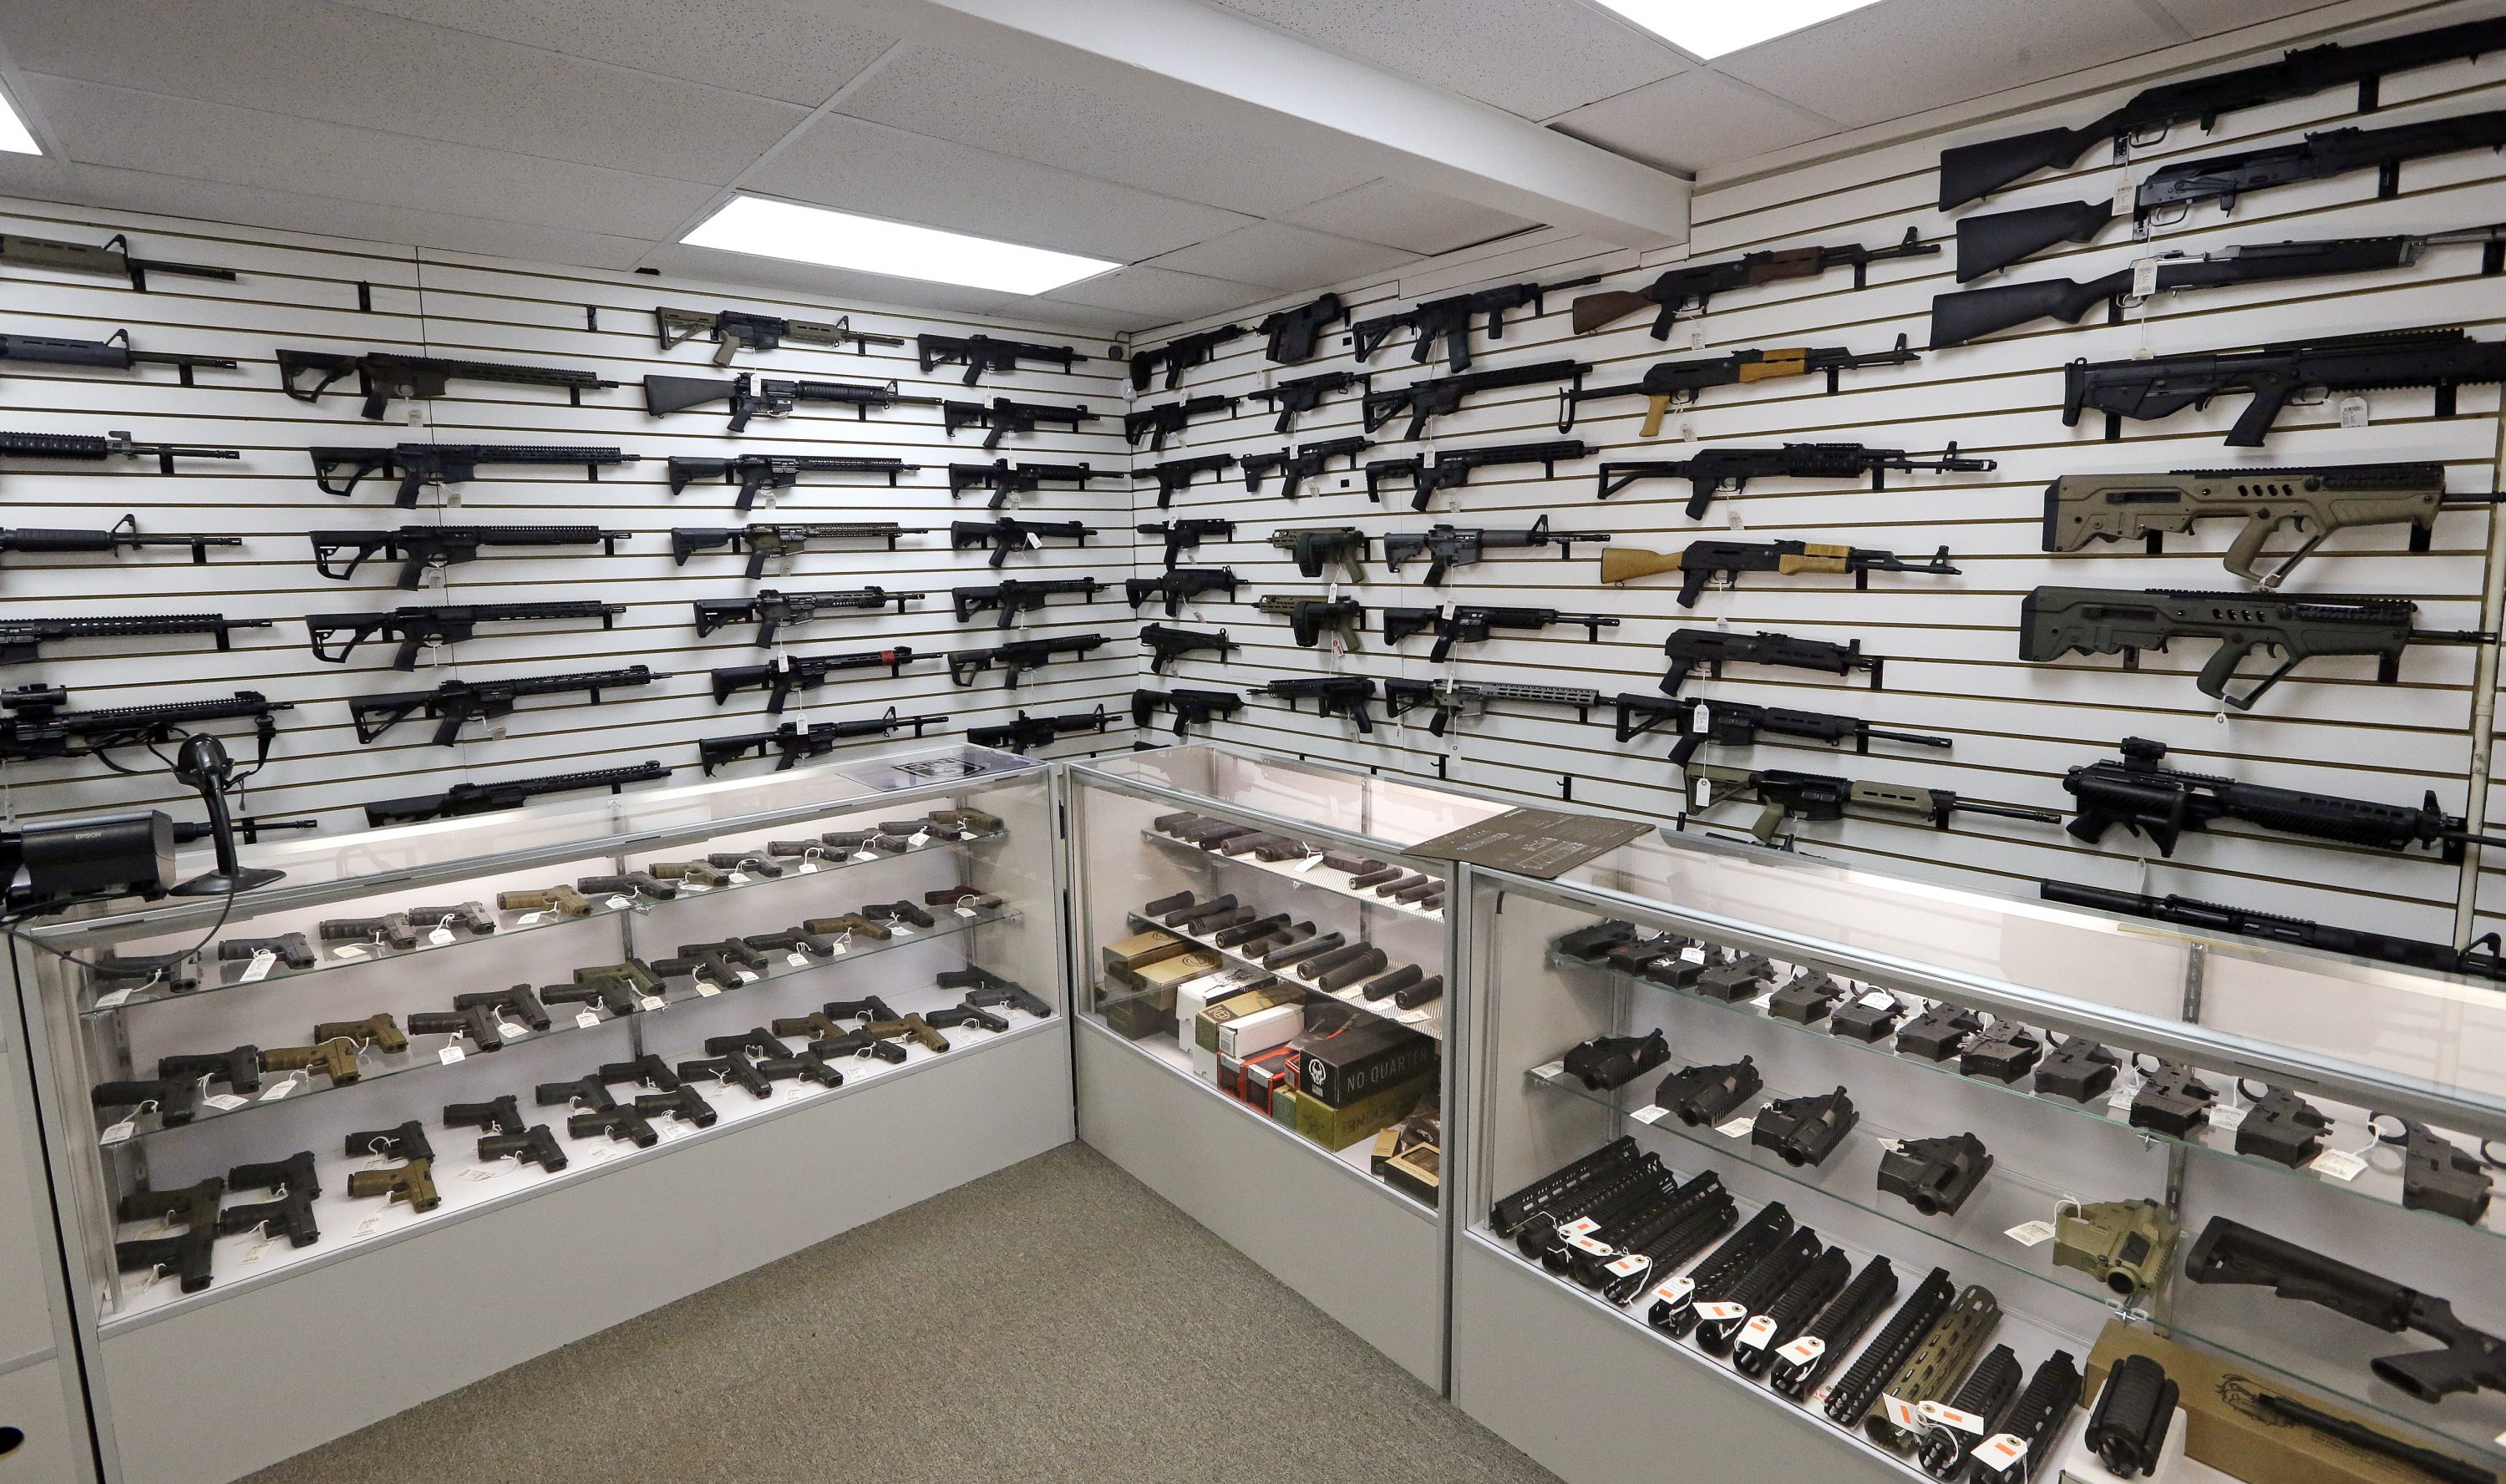 To Halt Some Gun Sales Cities Move To Force Better